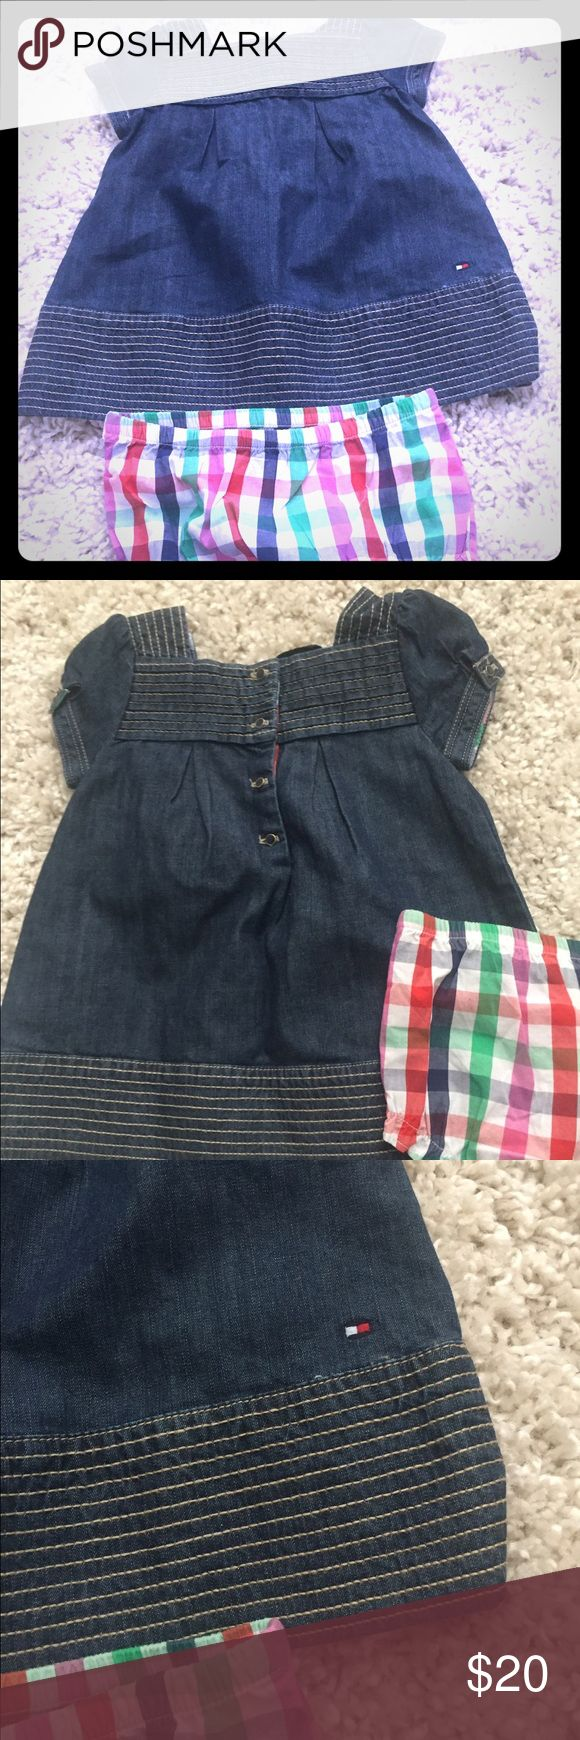 12mo Tommy Hilfiger dress Absolutely adorable little 12mo Tommy Hilfiger Jean dress w matching diaper cover. Gently used! Pet/smoke free home. Tommy Hilfiger Dresses Casual